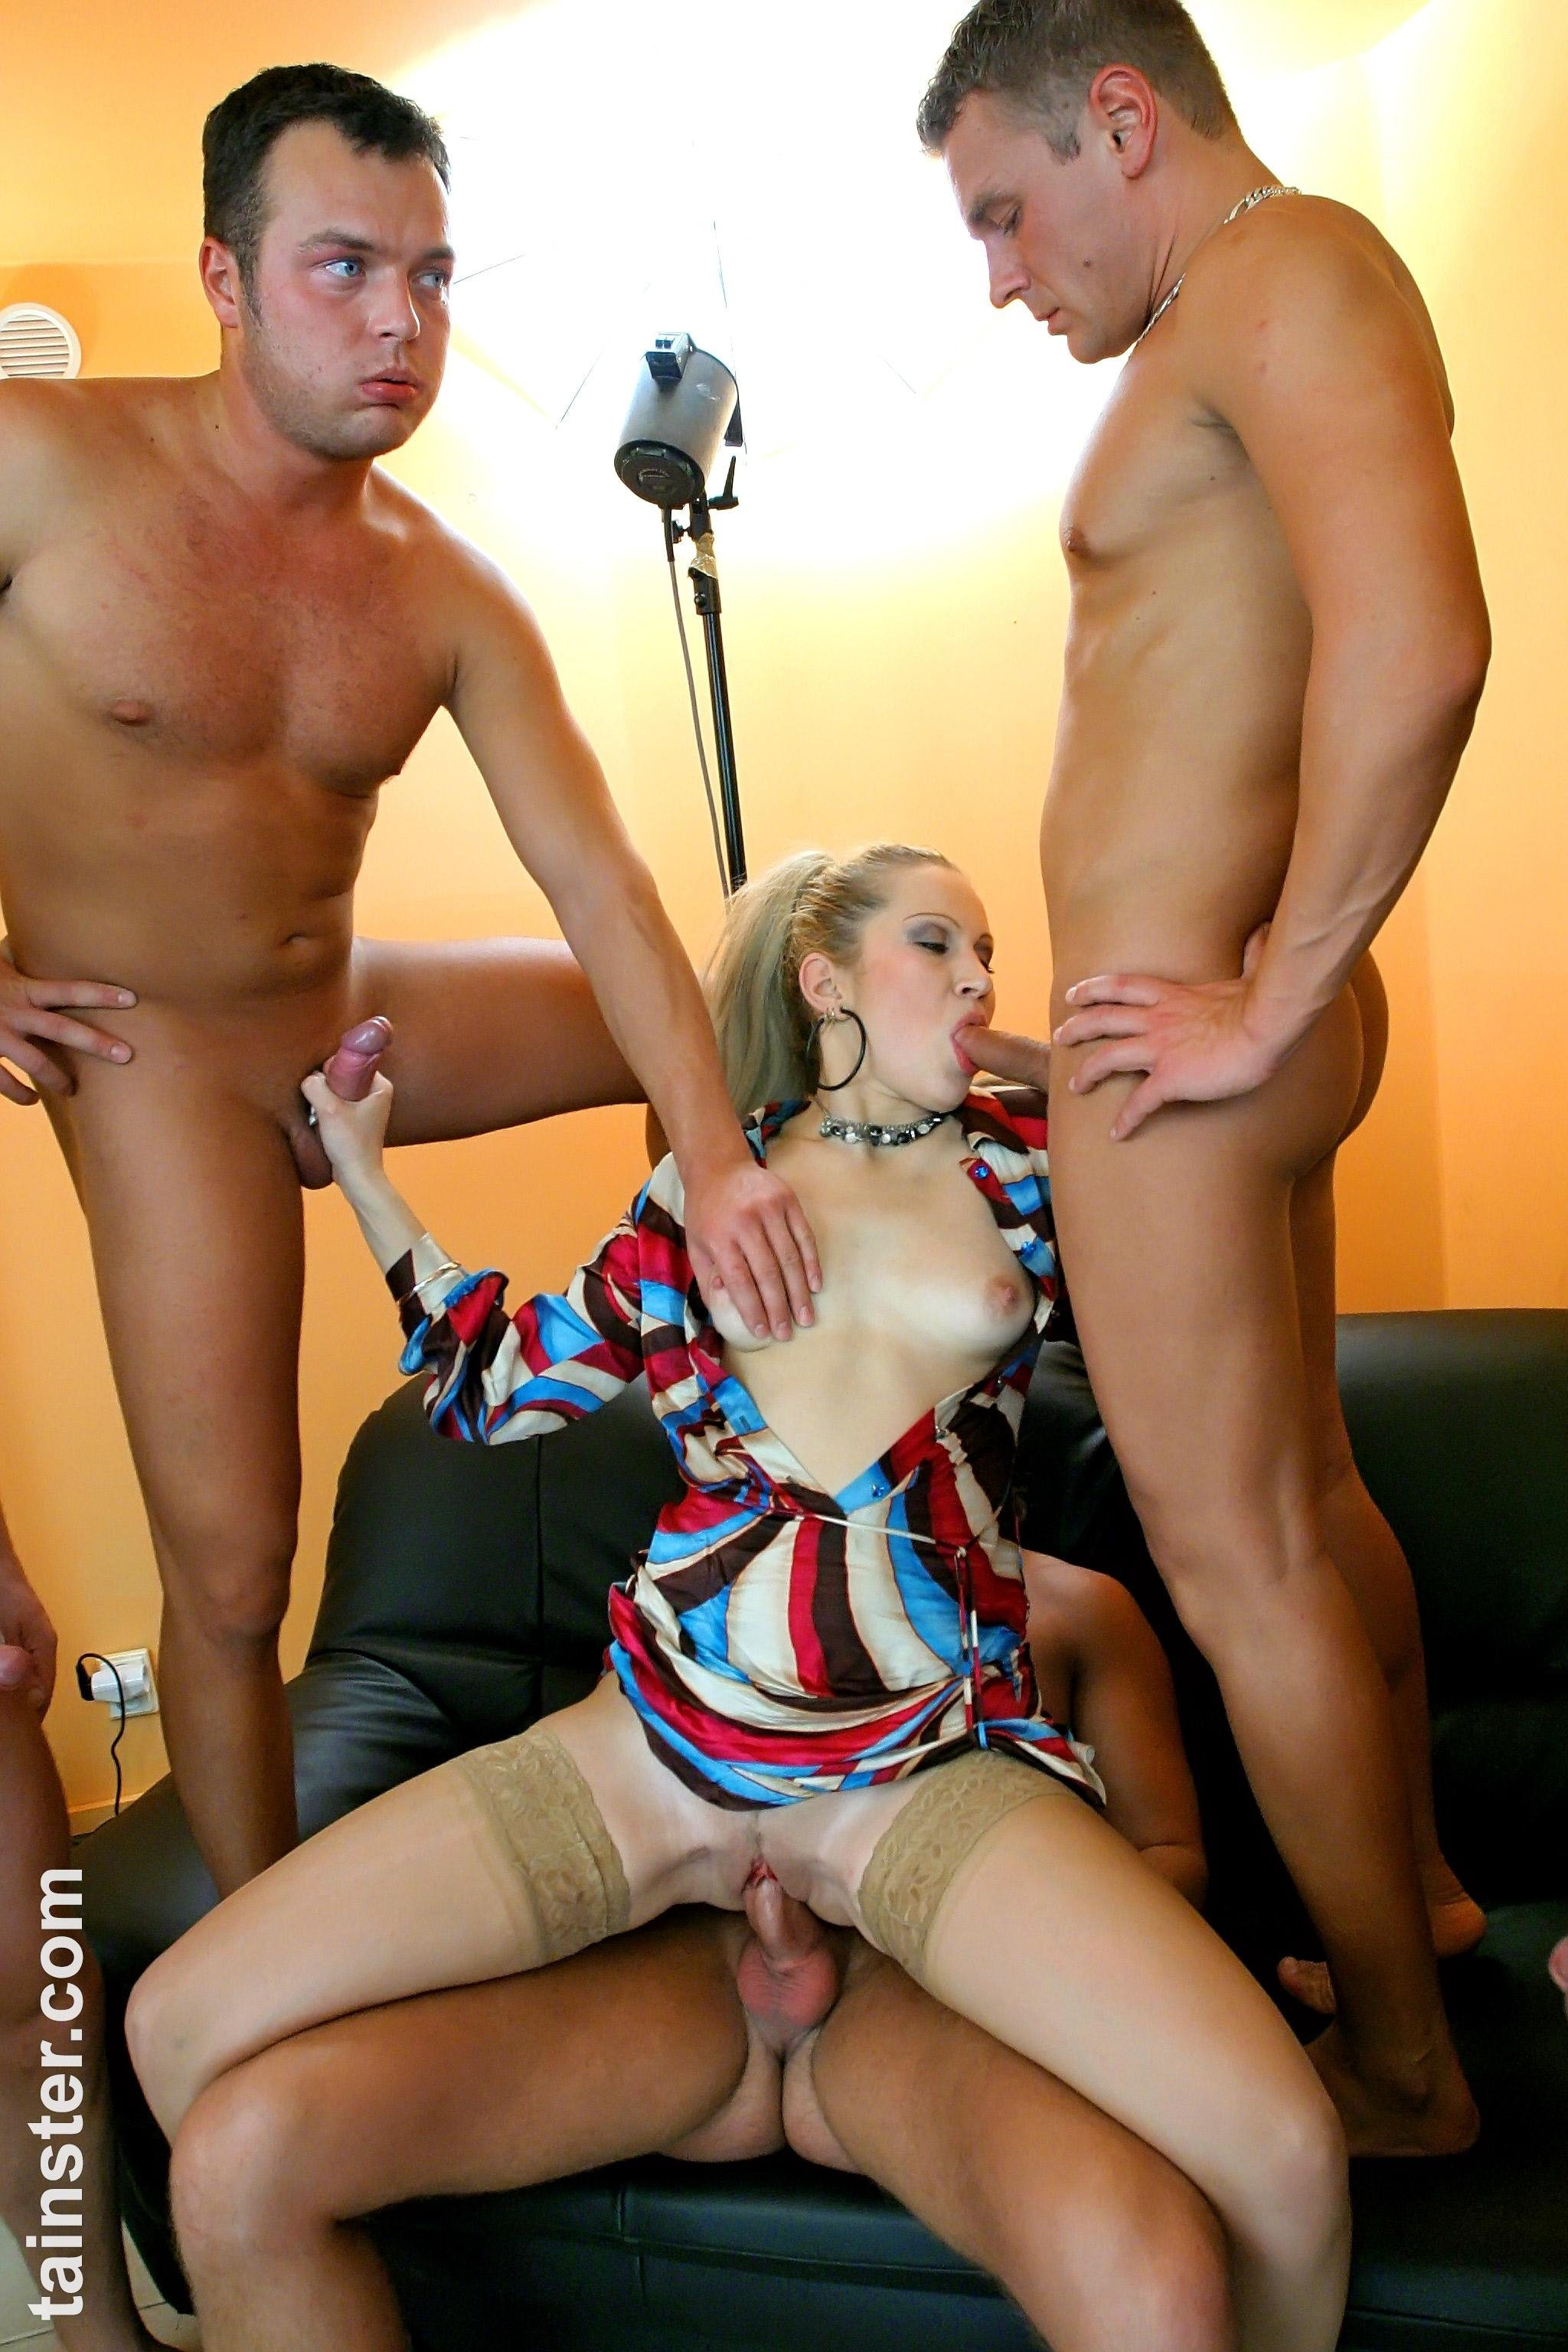 Anal milf party Buttfucked friends wife Long free video porn clips